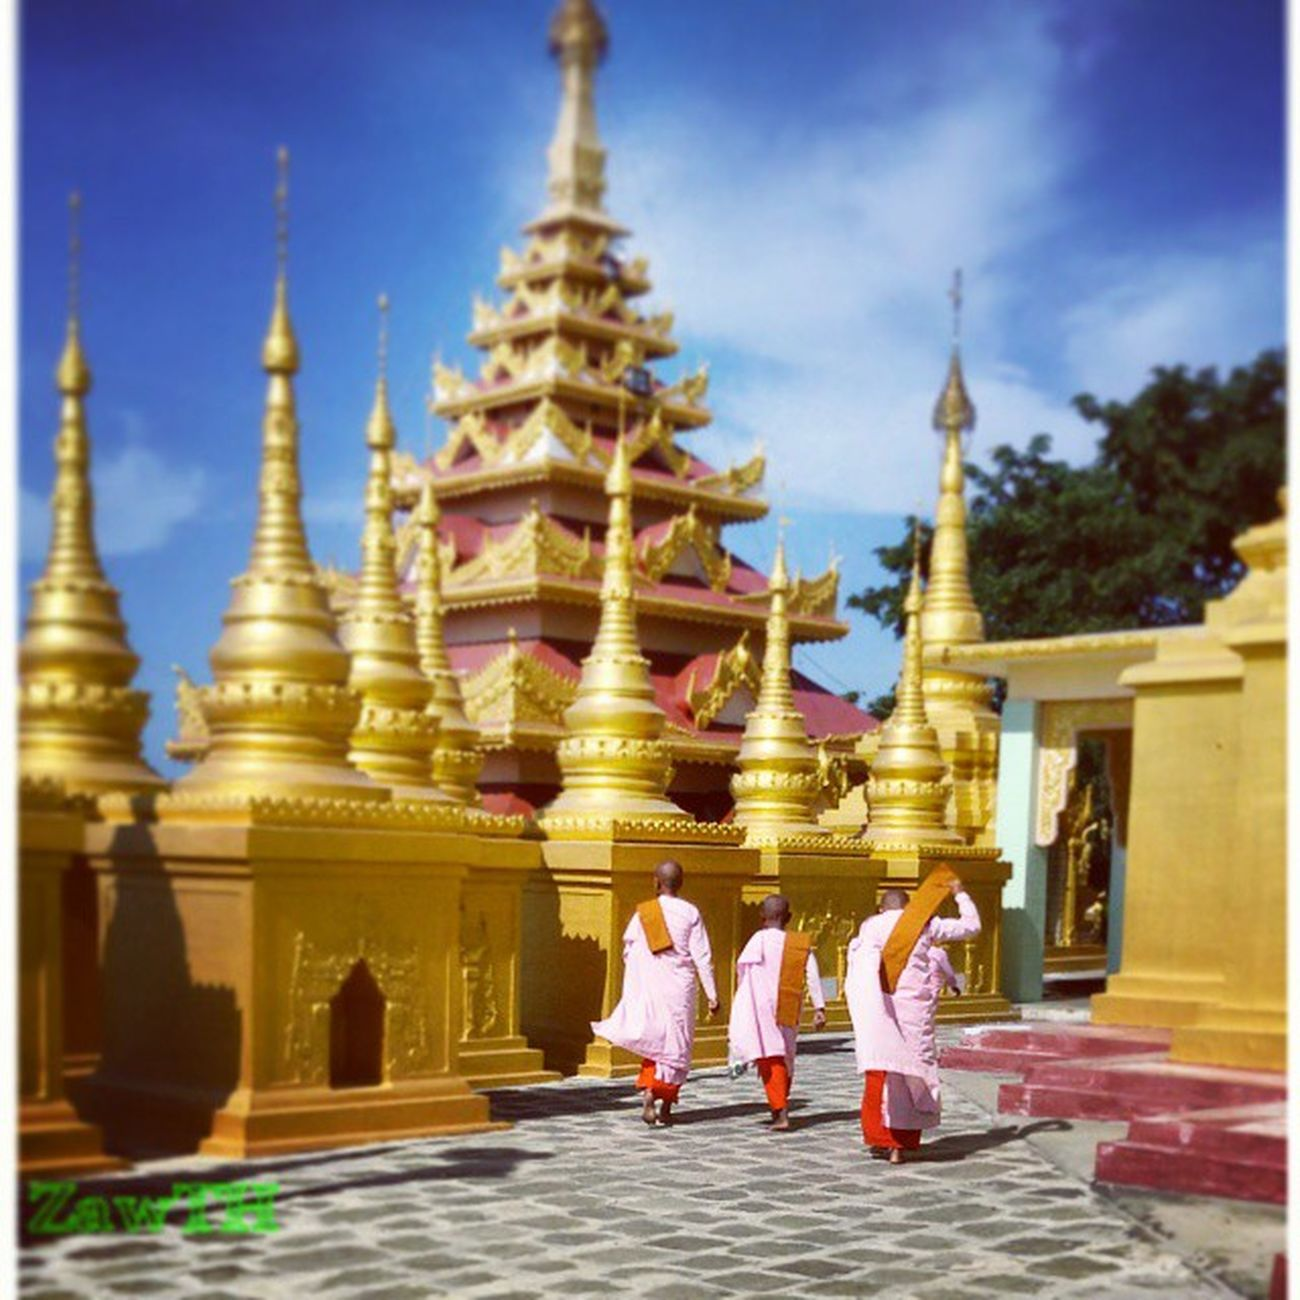 Goodnight igers. Greeting from Golden Land ကပွခဂကခr ကပွခဂကခr Monywa Mandalay Myanmar Myanmarphotos Pagoda Monastery Monk  Nun Burmeseculture Buddhist Buddhism Igersmandalay Igersmyanmar Vscomyanmar Zawth Ig_sharepoint Ig_worldphoto Ig_great_shot_fla Ig_great_shot Bsn_mobile Bsn_features Rcnocrop